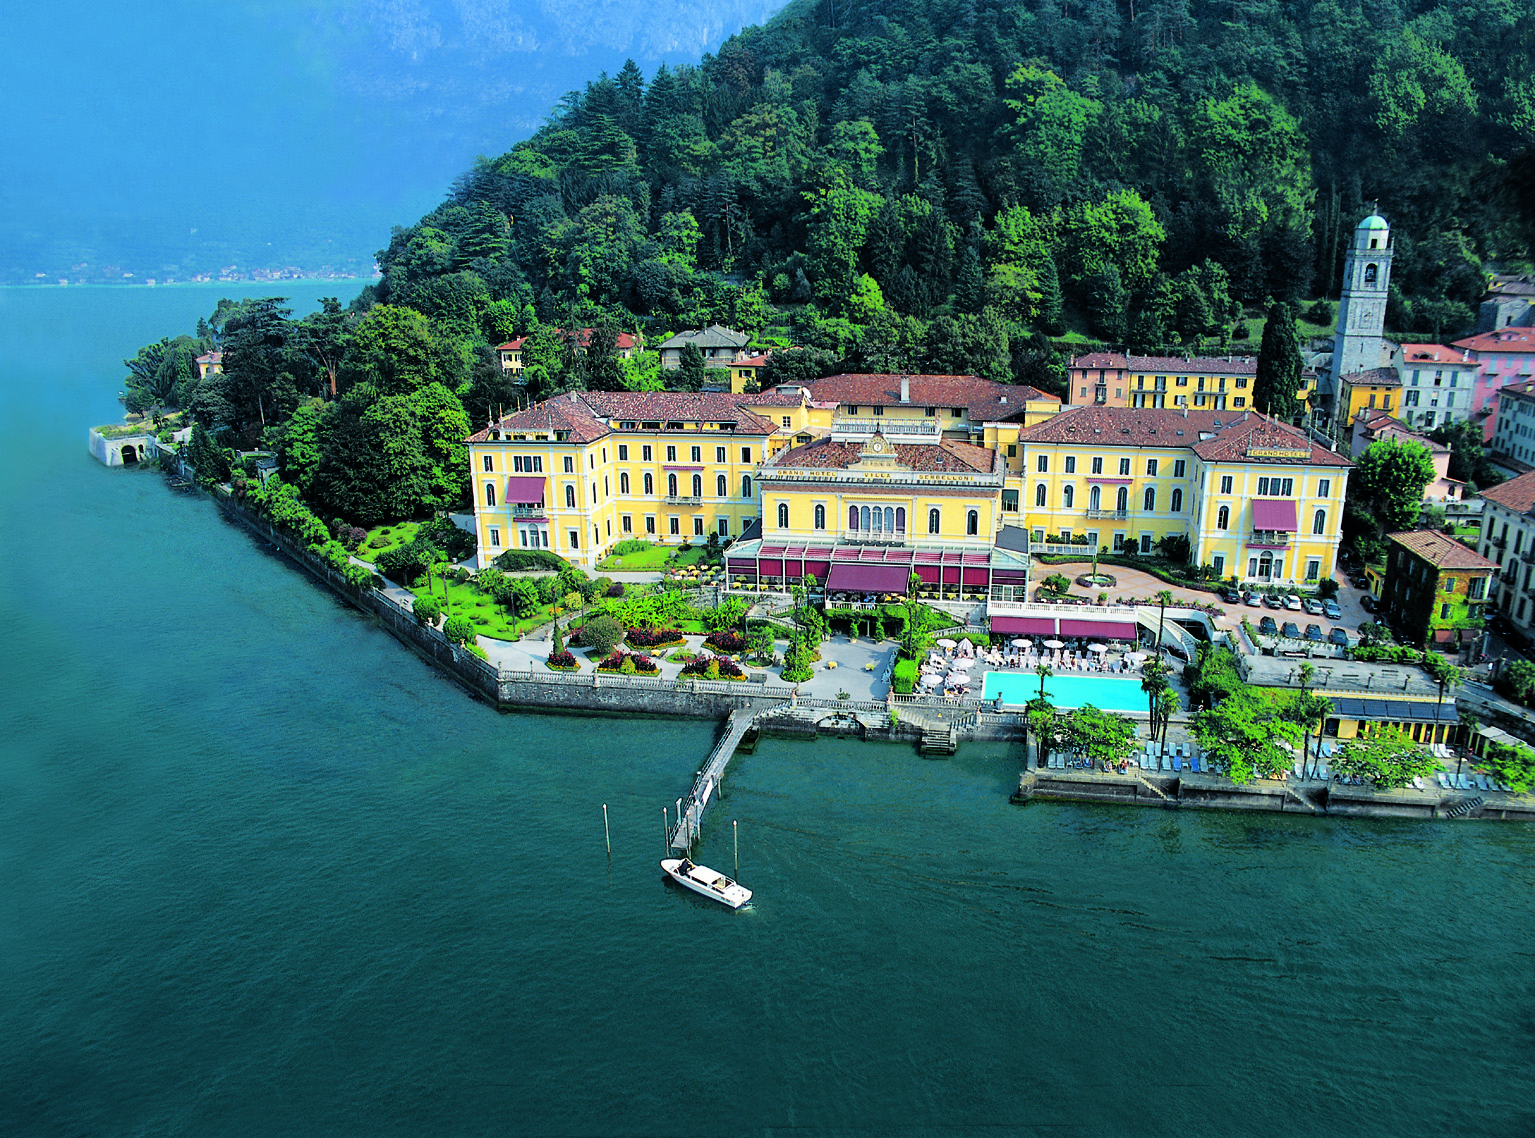 Bellagio lake como italy a view of the grand hotel villa serbelloni